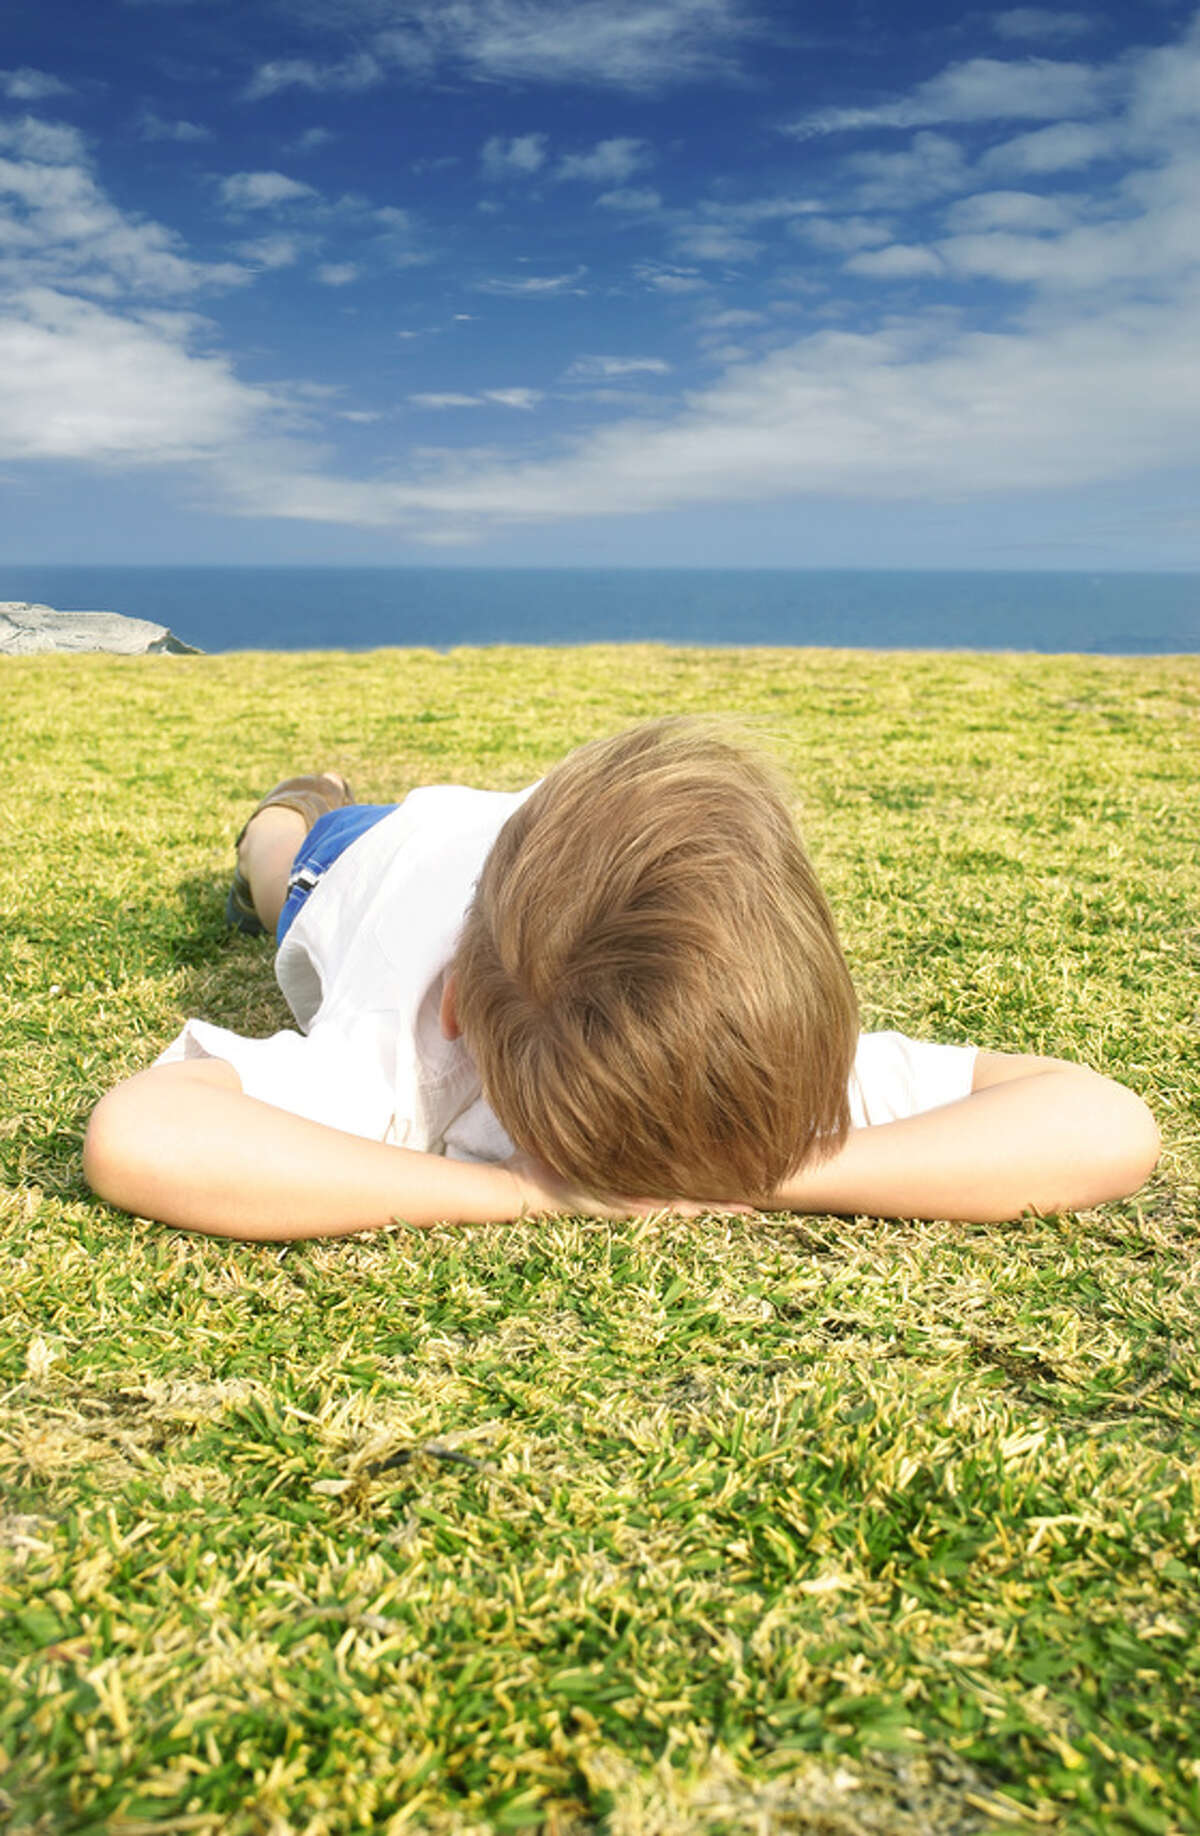 Daydreaming may be a sign that your child isn't getting the stimulation needed to stay involved in learning.